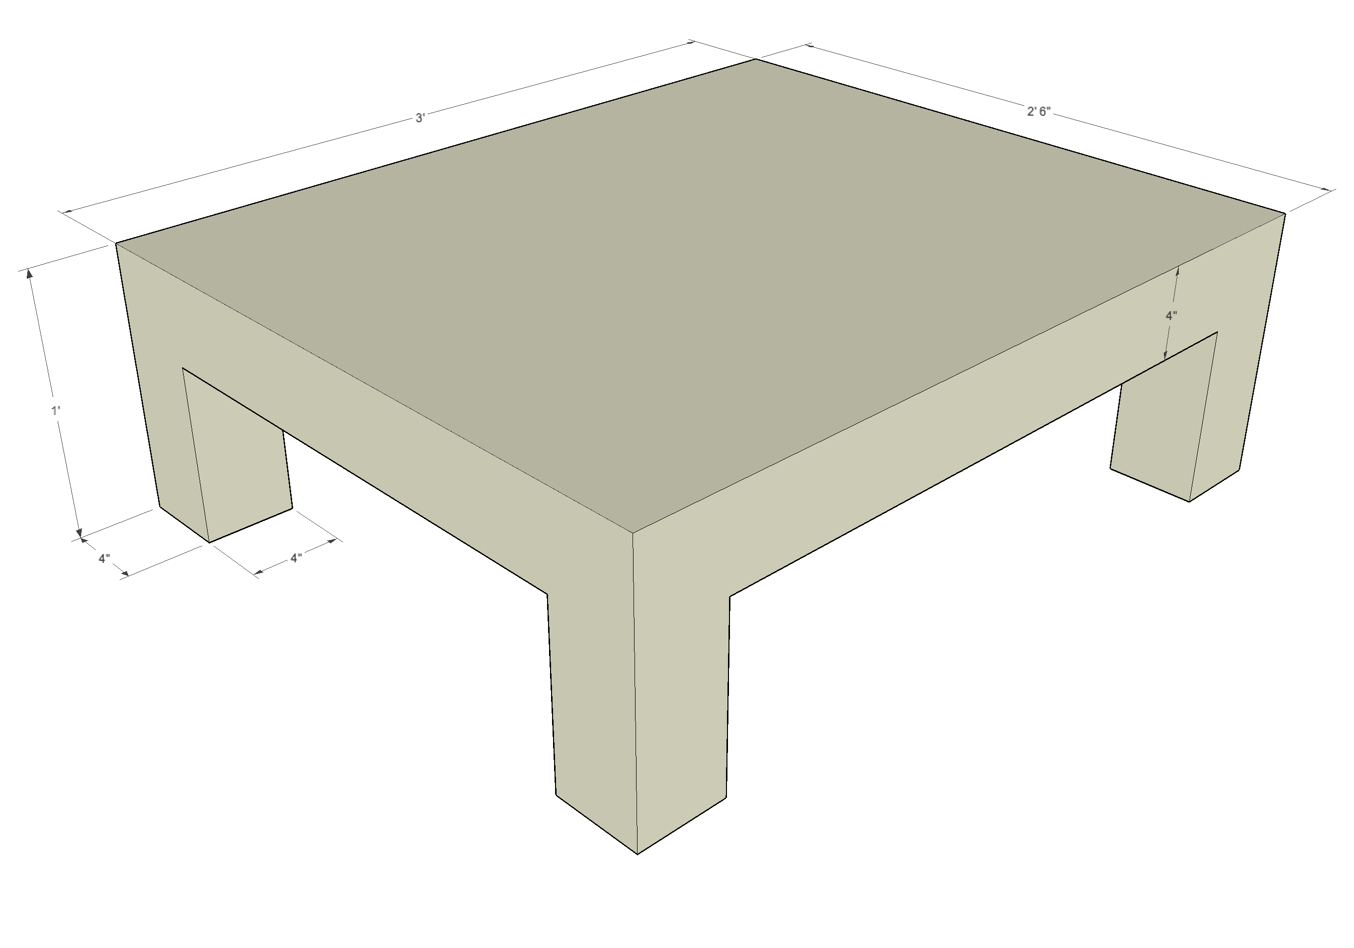 coffee table dimensions standard grady middle school